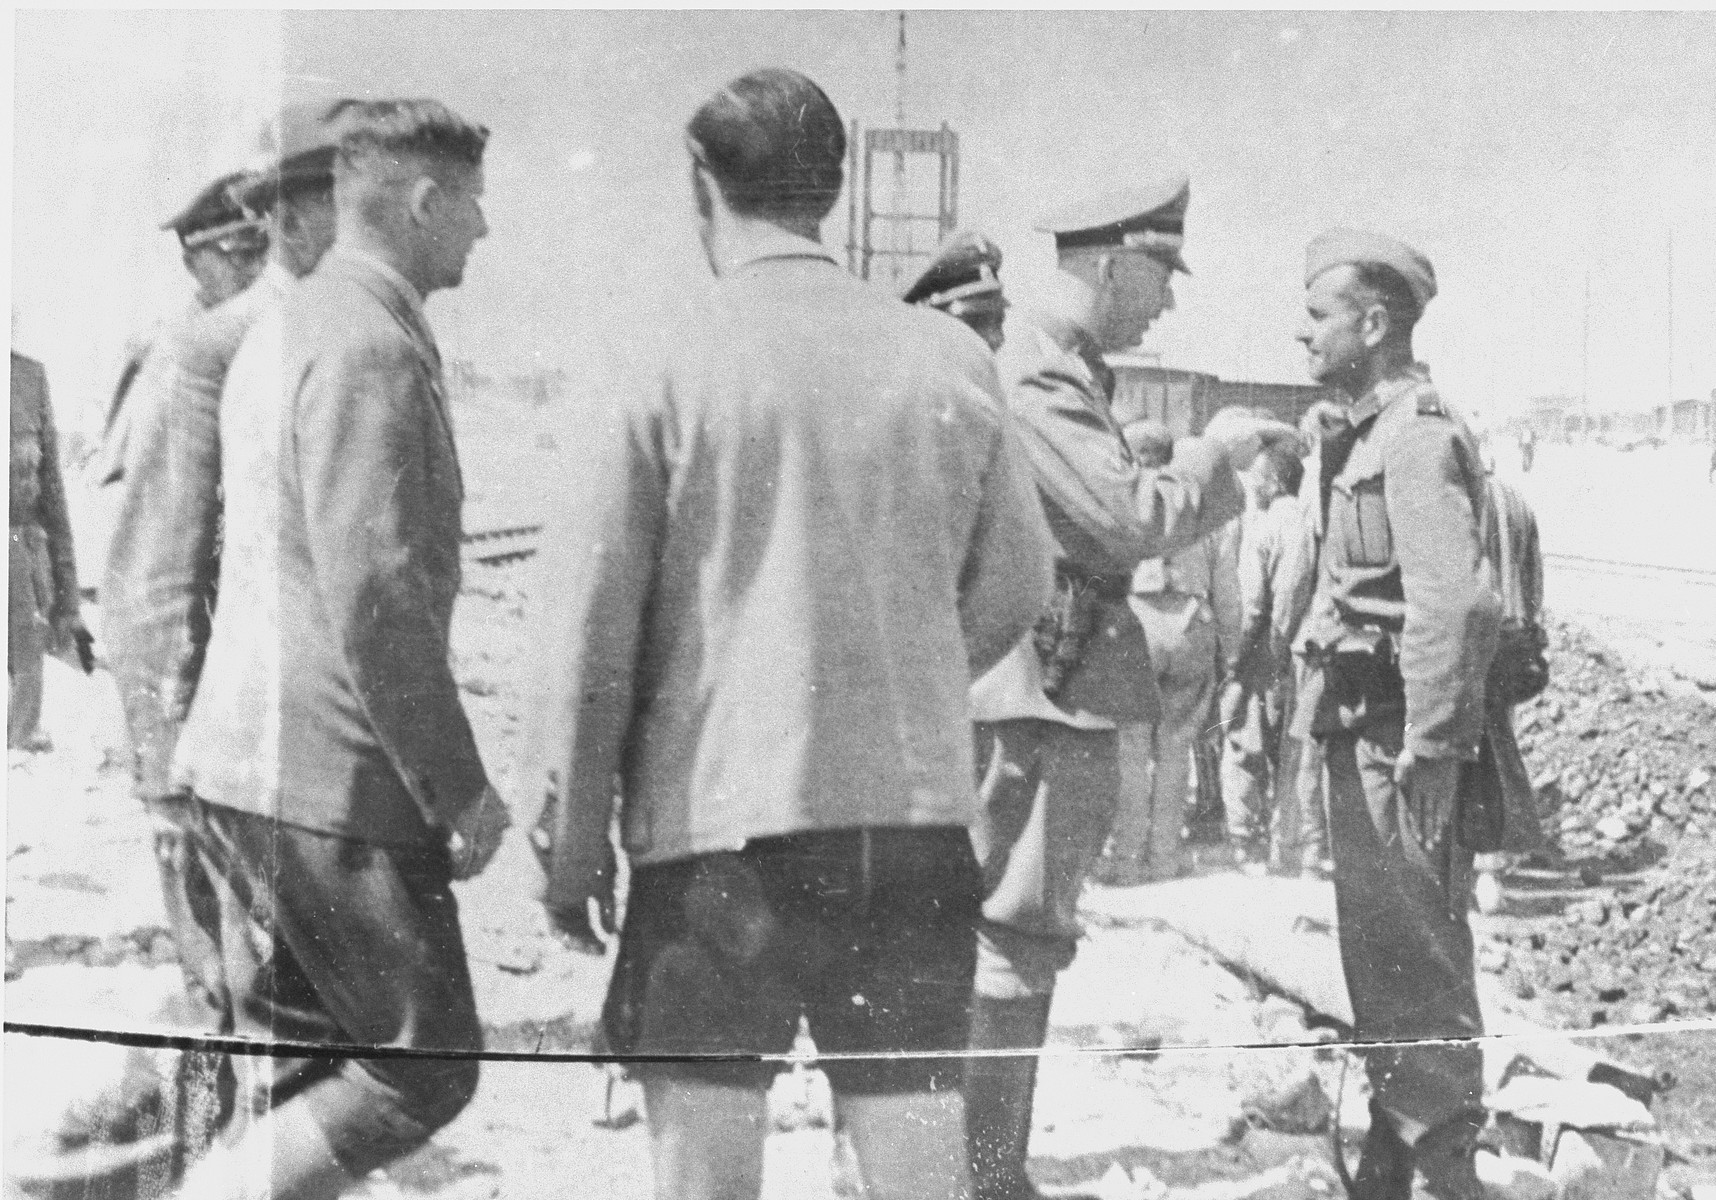 During a tour of the Monowitz-Buna building site, Reichsfuehrer SS Heinrich Himmler speaks to a member of the SS who is supervising the prisoners working on the construction of the IG Farben plant.